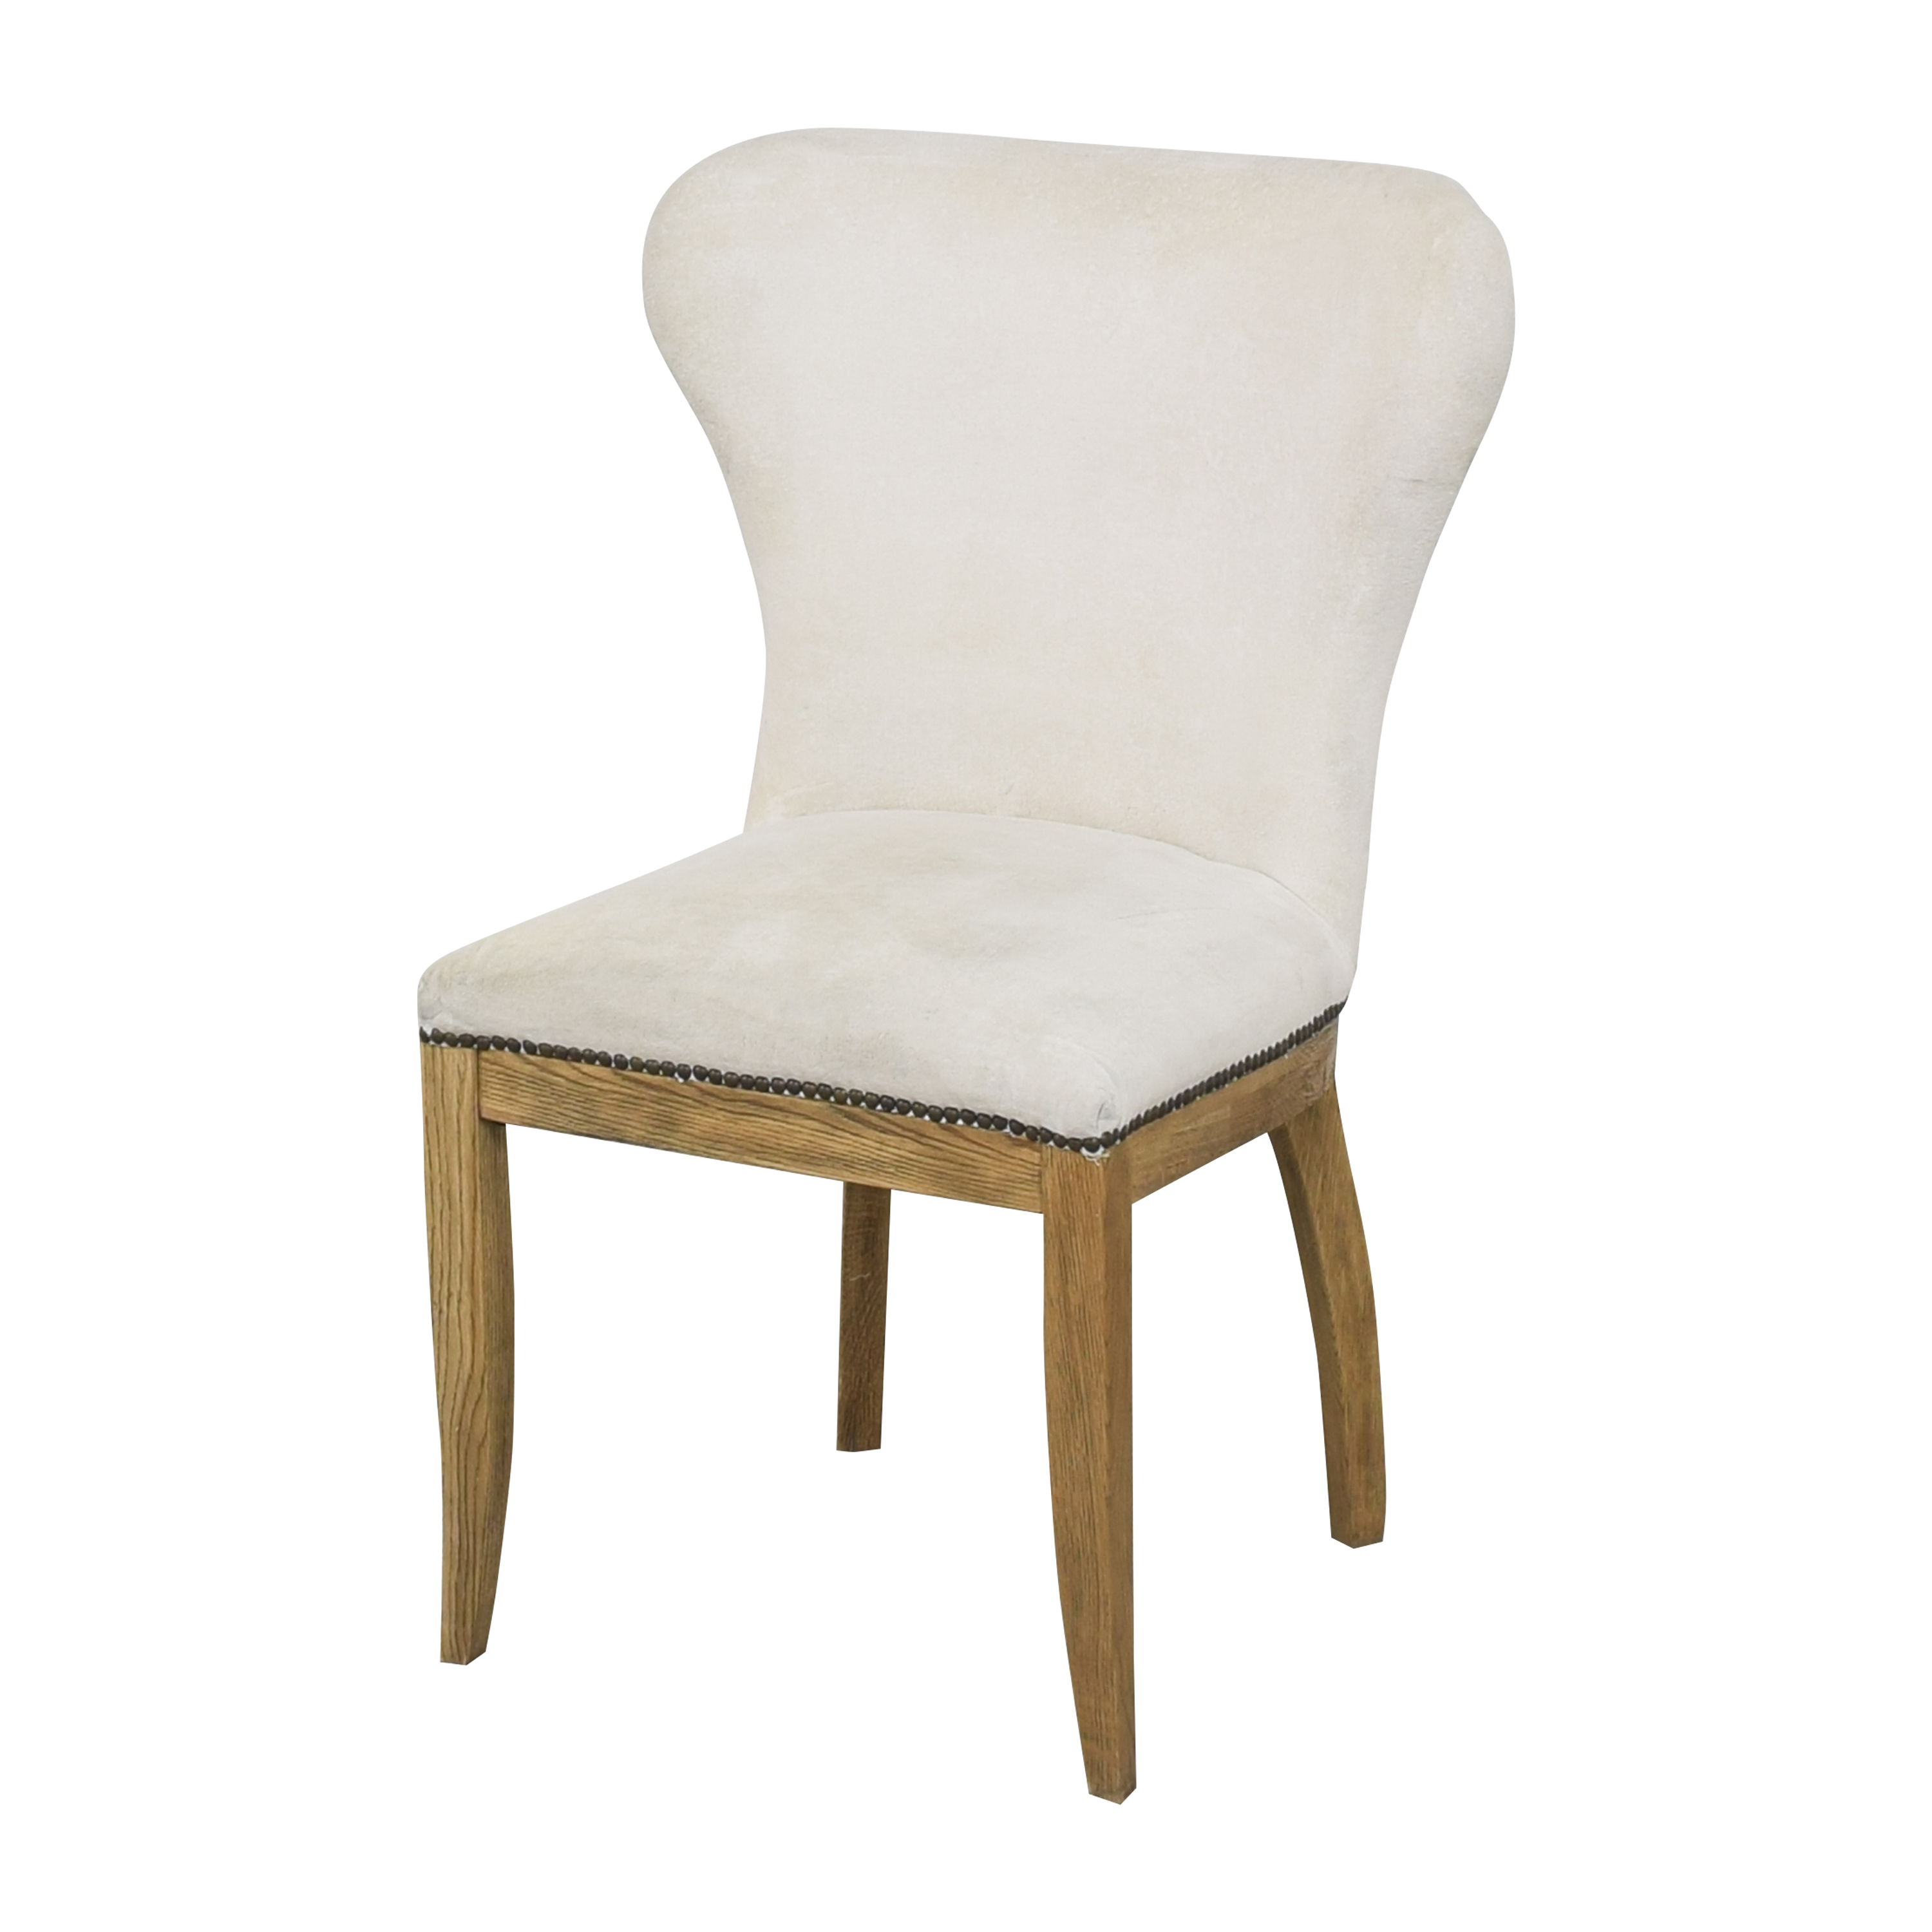 Restoration Hardware Upholstered Dining Chairs / Chairs